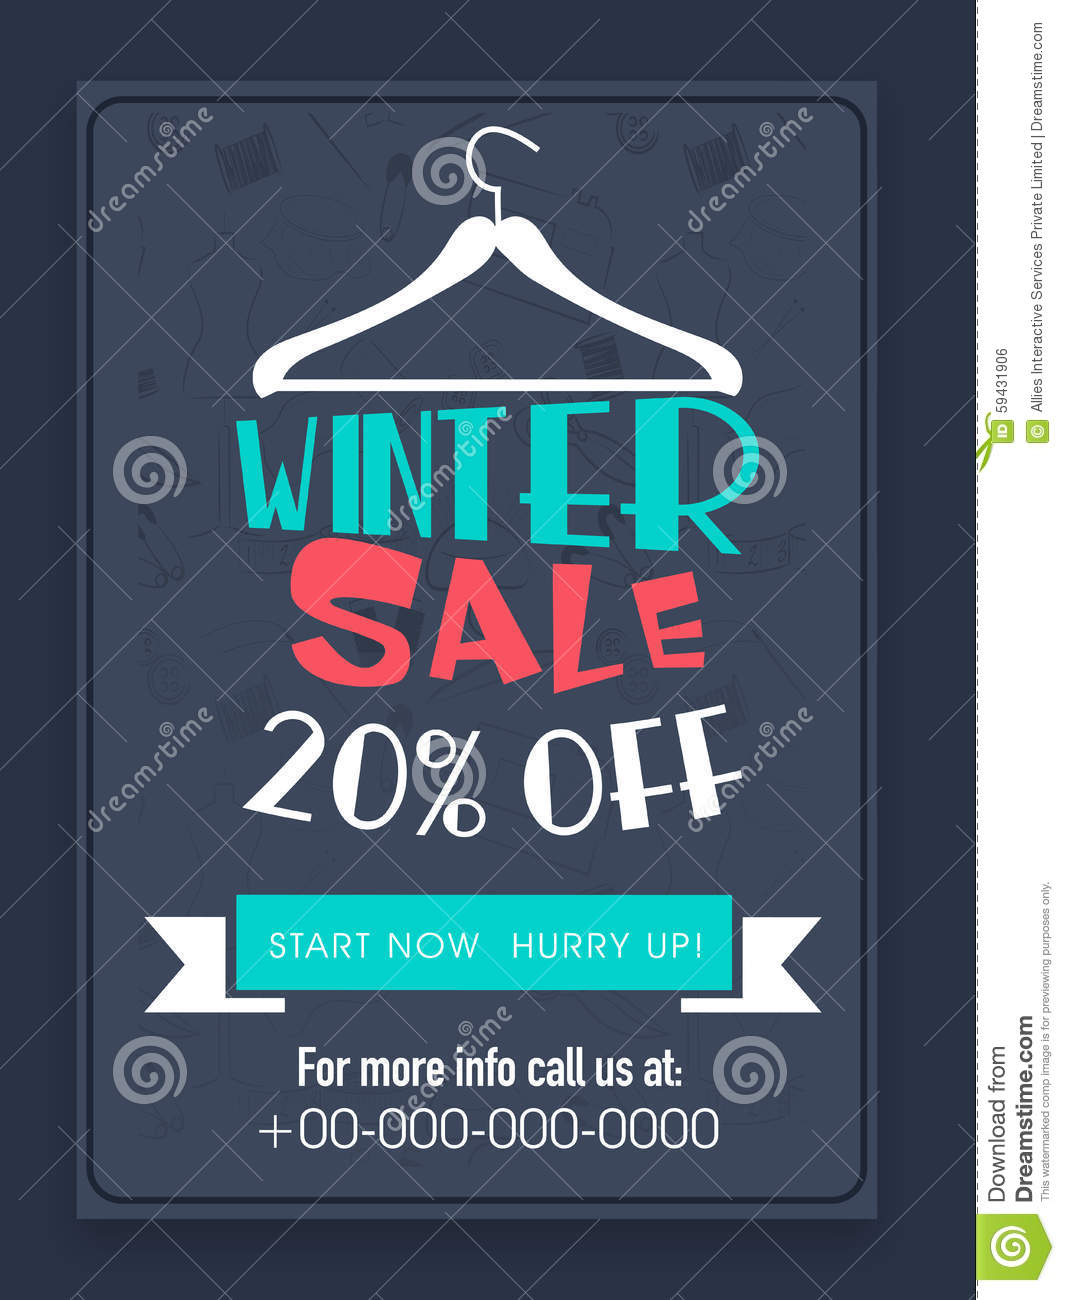 Winter Sale Flyer Or Banner. Stock Photo